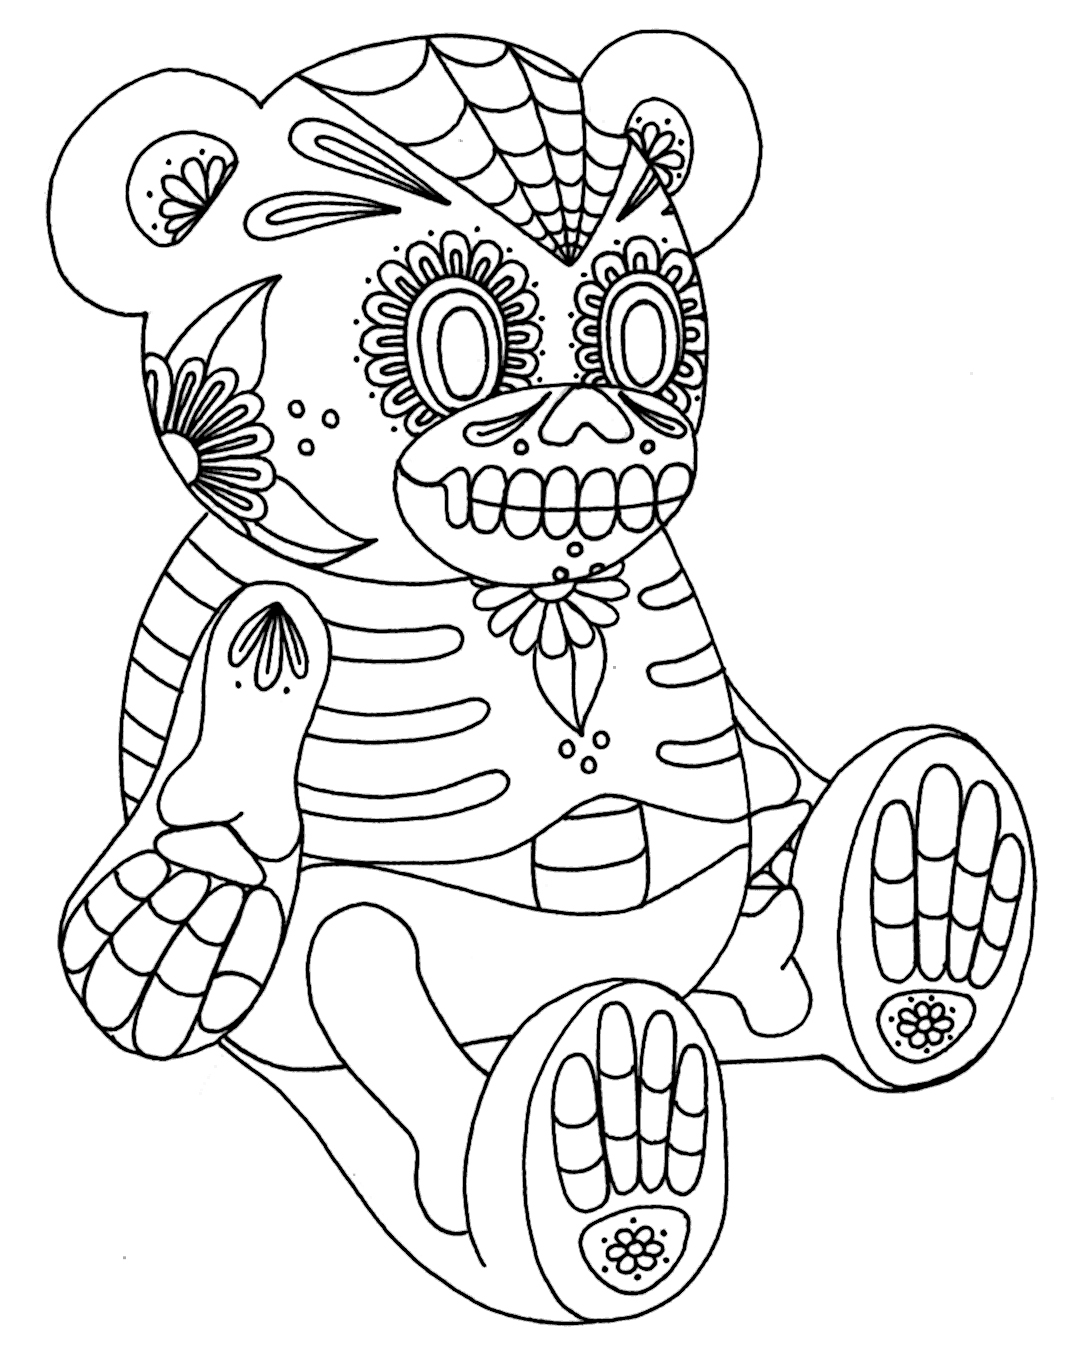 candy skull coloring pages free printable sugar skull coloring sheets lucid publishing pages skull coloring candy